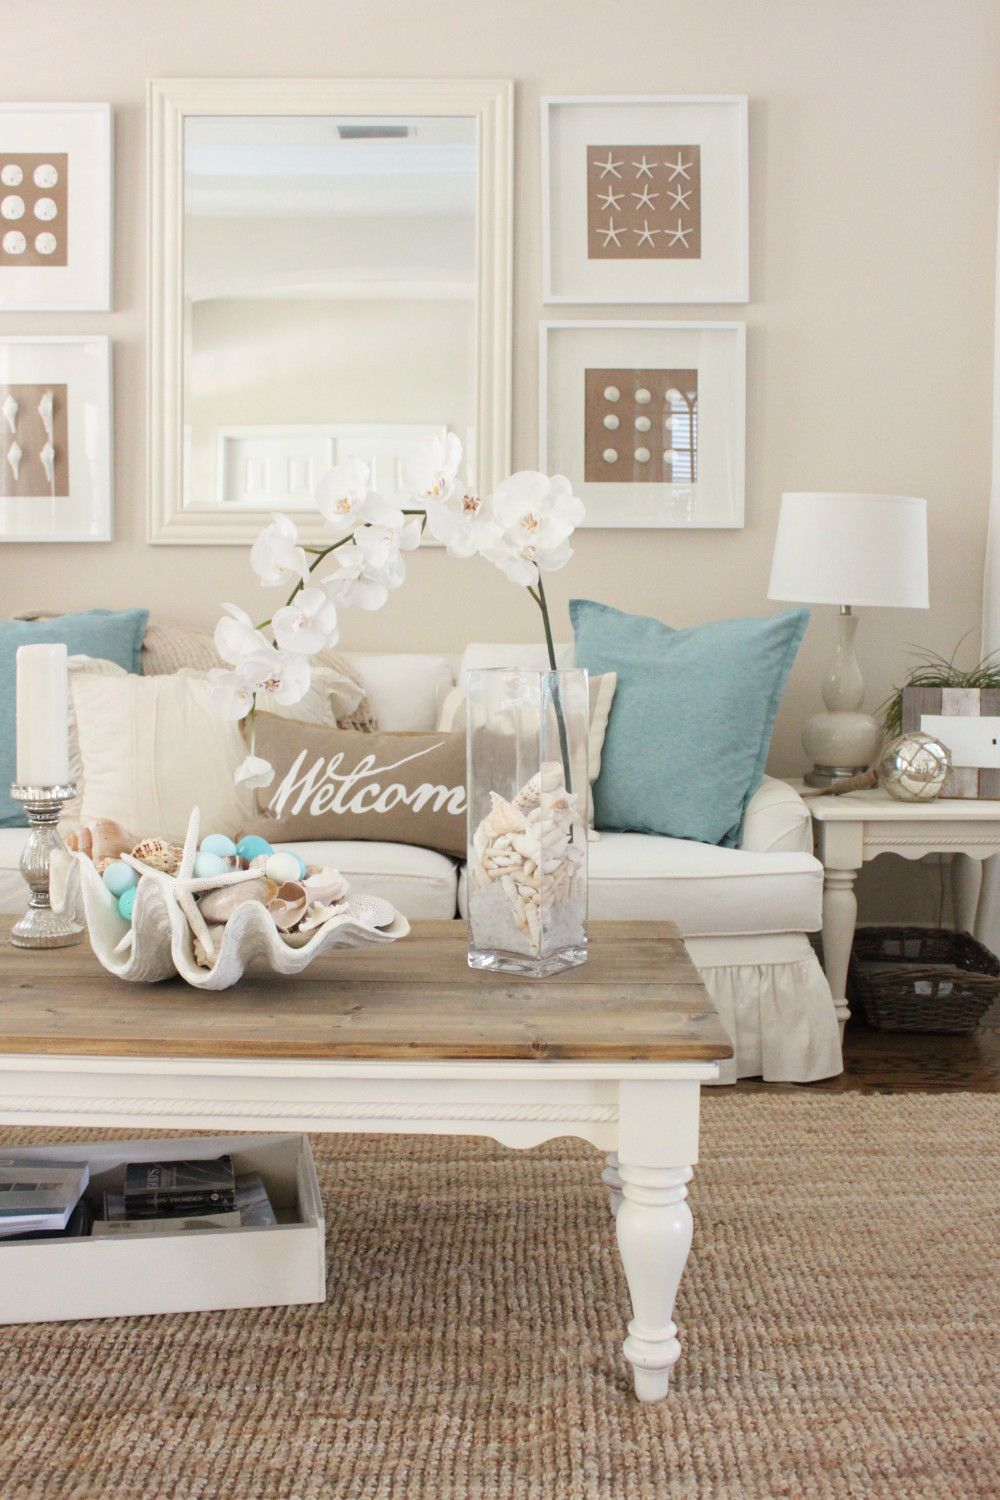 50 Inspiring Living Room Ideas  Day decor  Beach living